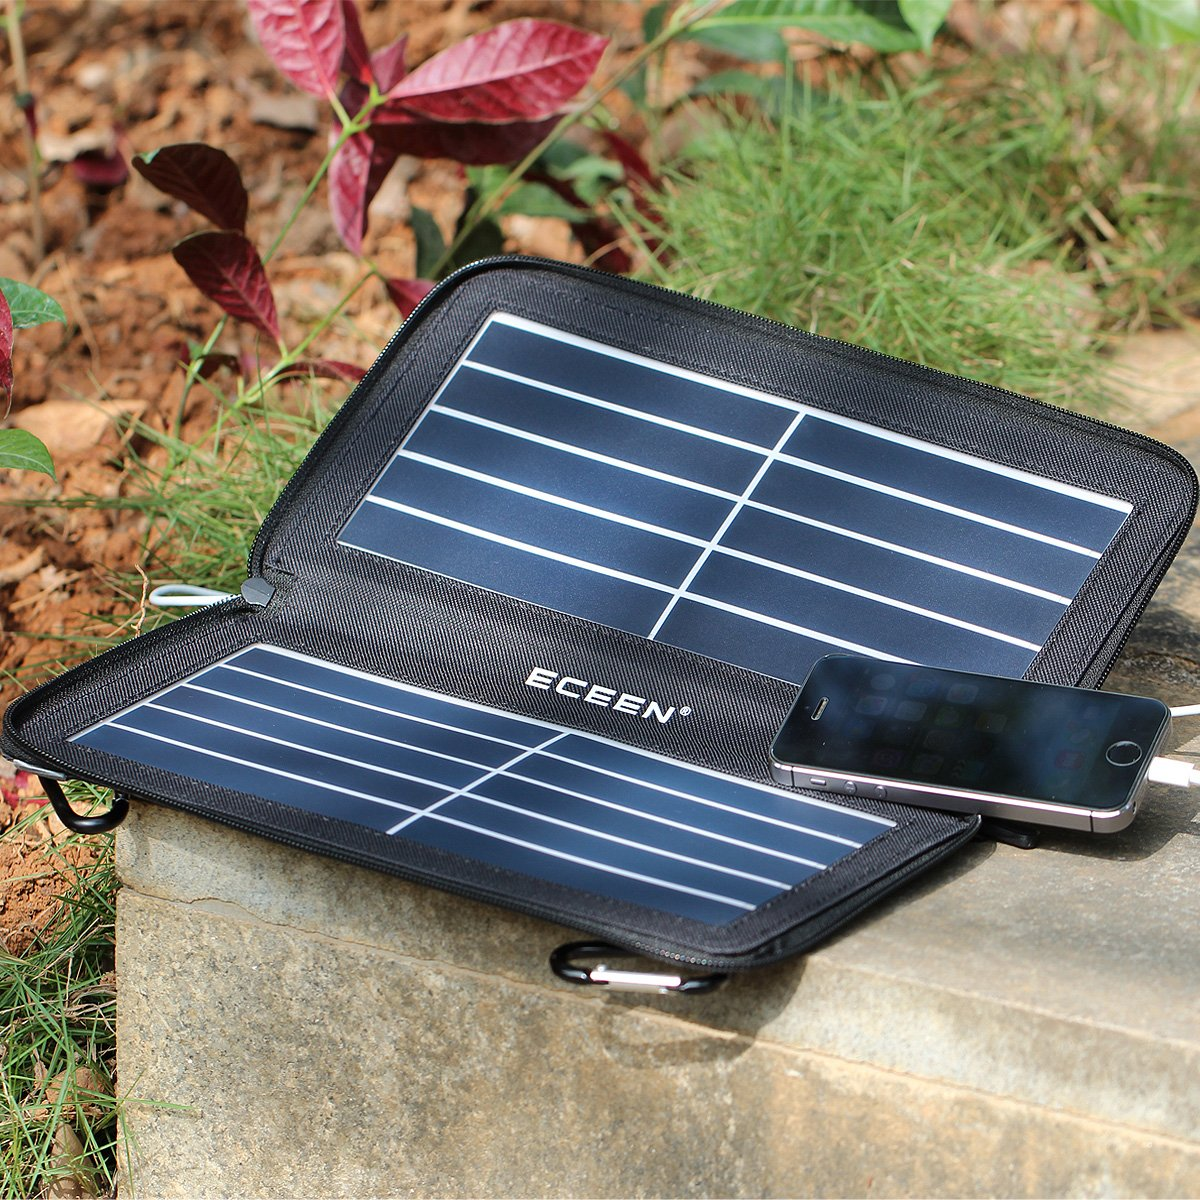 ECEEN Folding Solar Panel Phone Charger With USB Port,Zipper Pack for iPhone, iPad, iPods, Samsung, Android Smartphones Speaker Gopro All 5V USB-Charging Devices (Black) by ECEEN (Image #5)